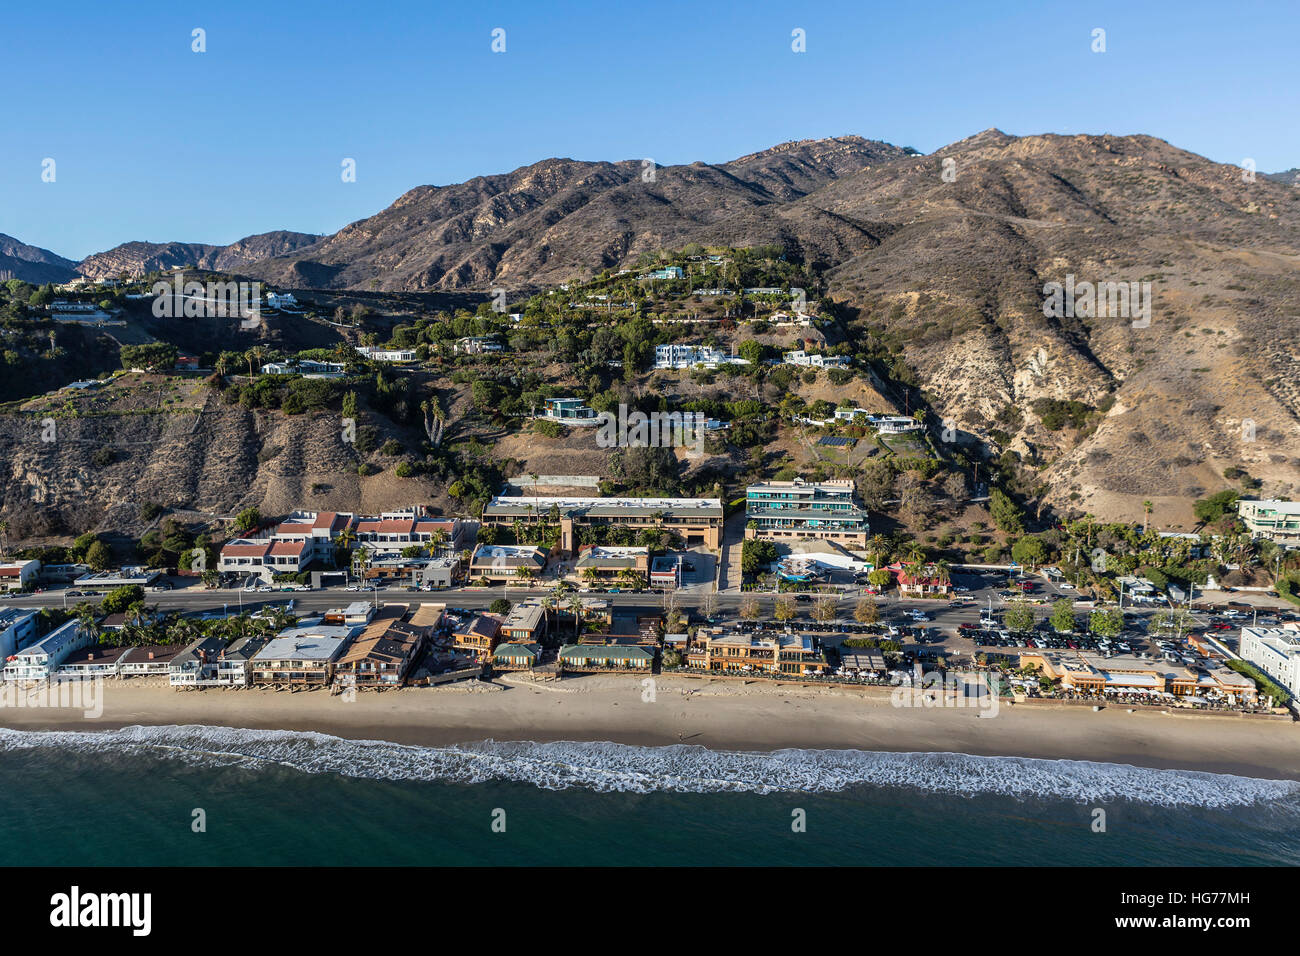 Aerial of built up Malibu beachfront near Los Angeles in Southern California. Stock Photo